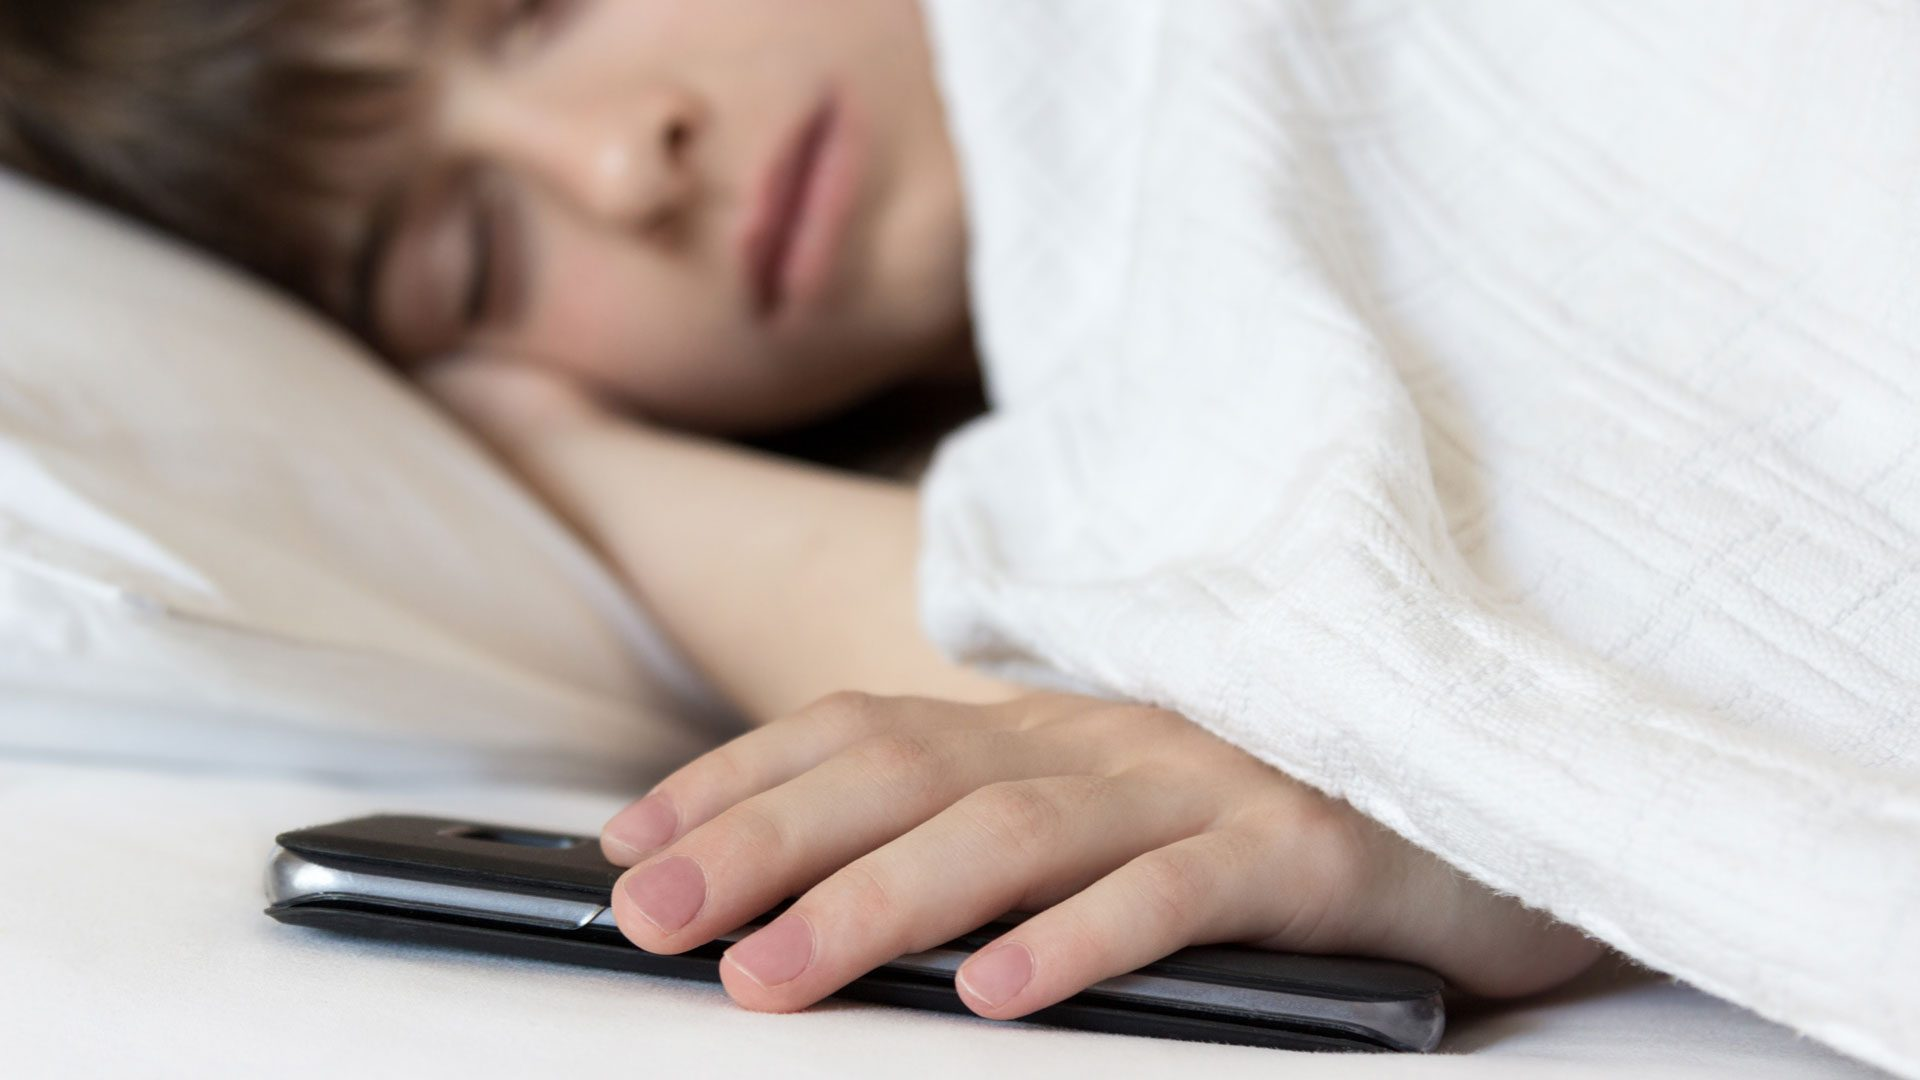 5 reasons why children should not sleep near mobile phones